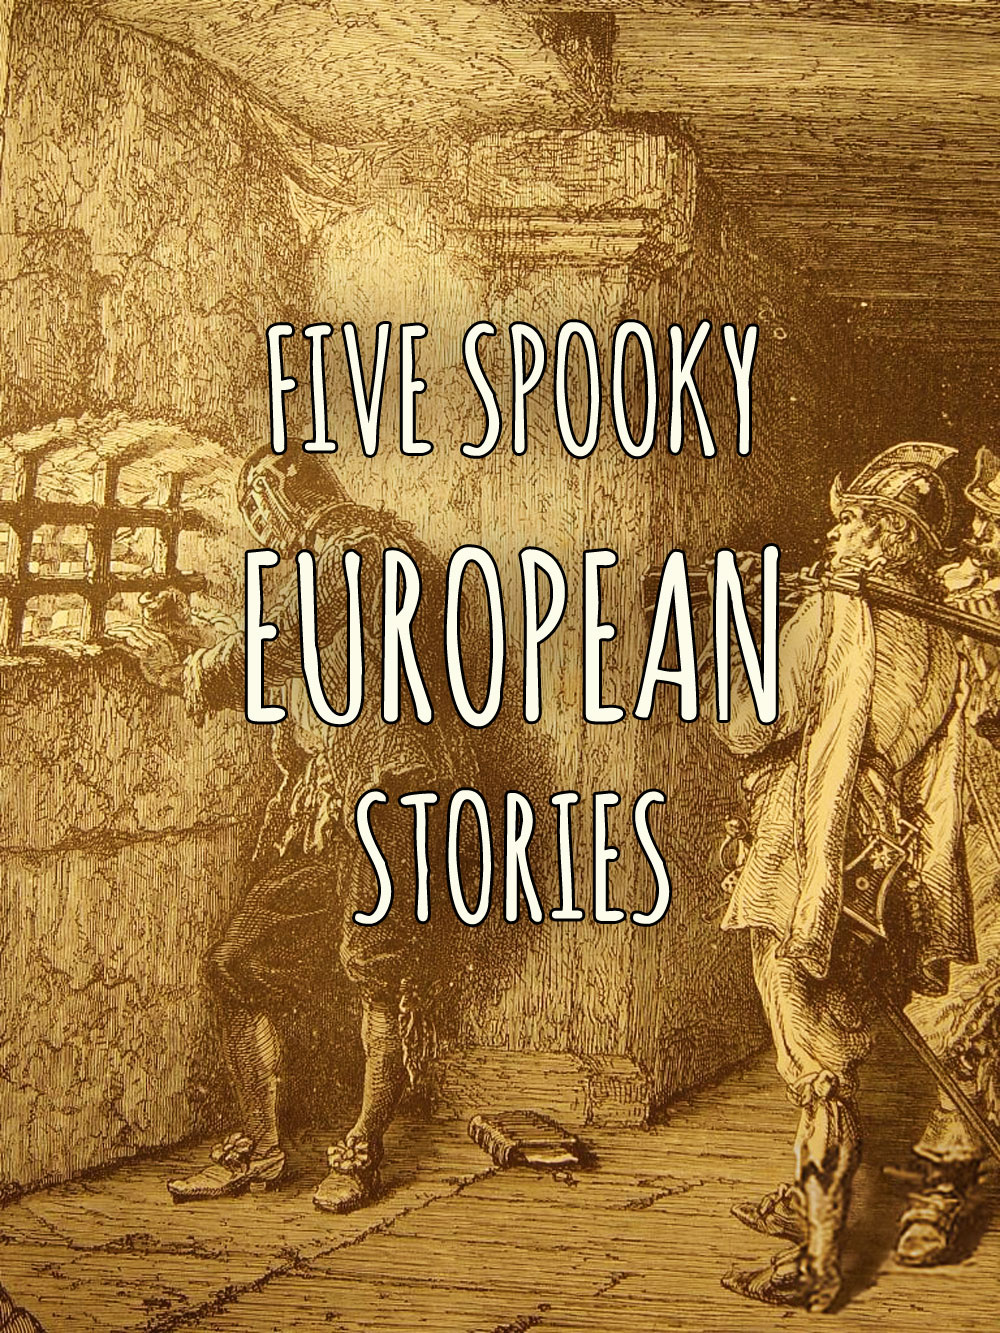 5 Spooky European Stories